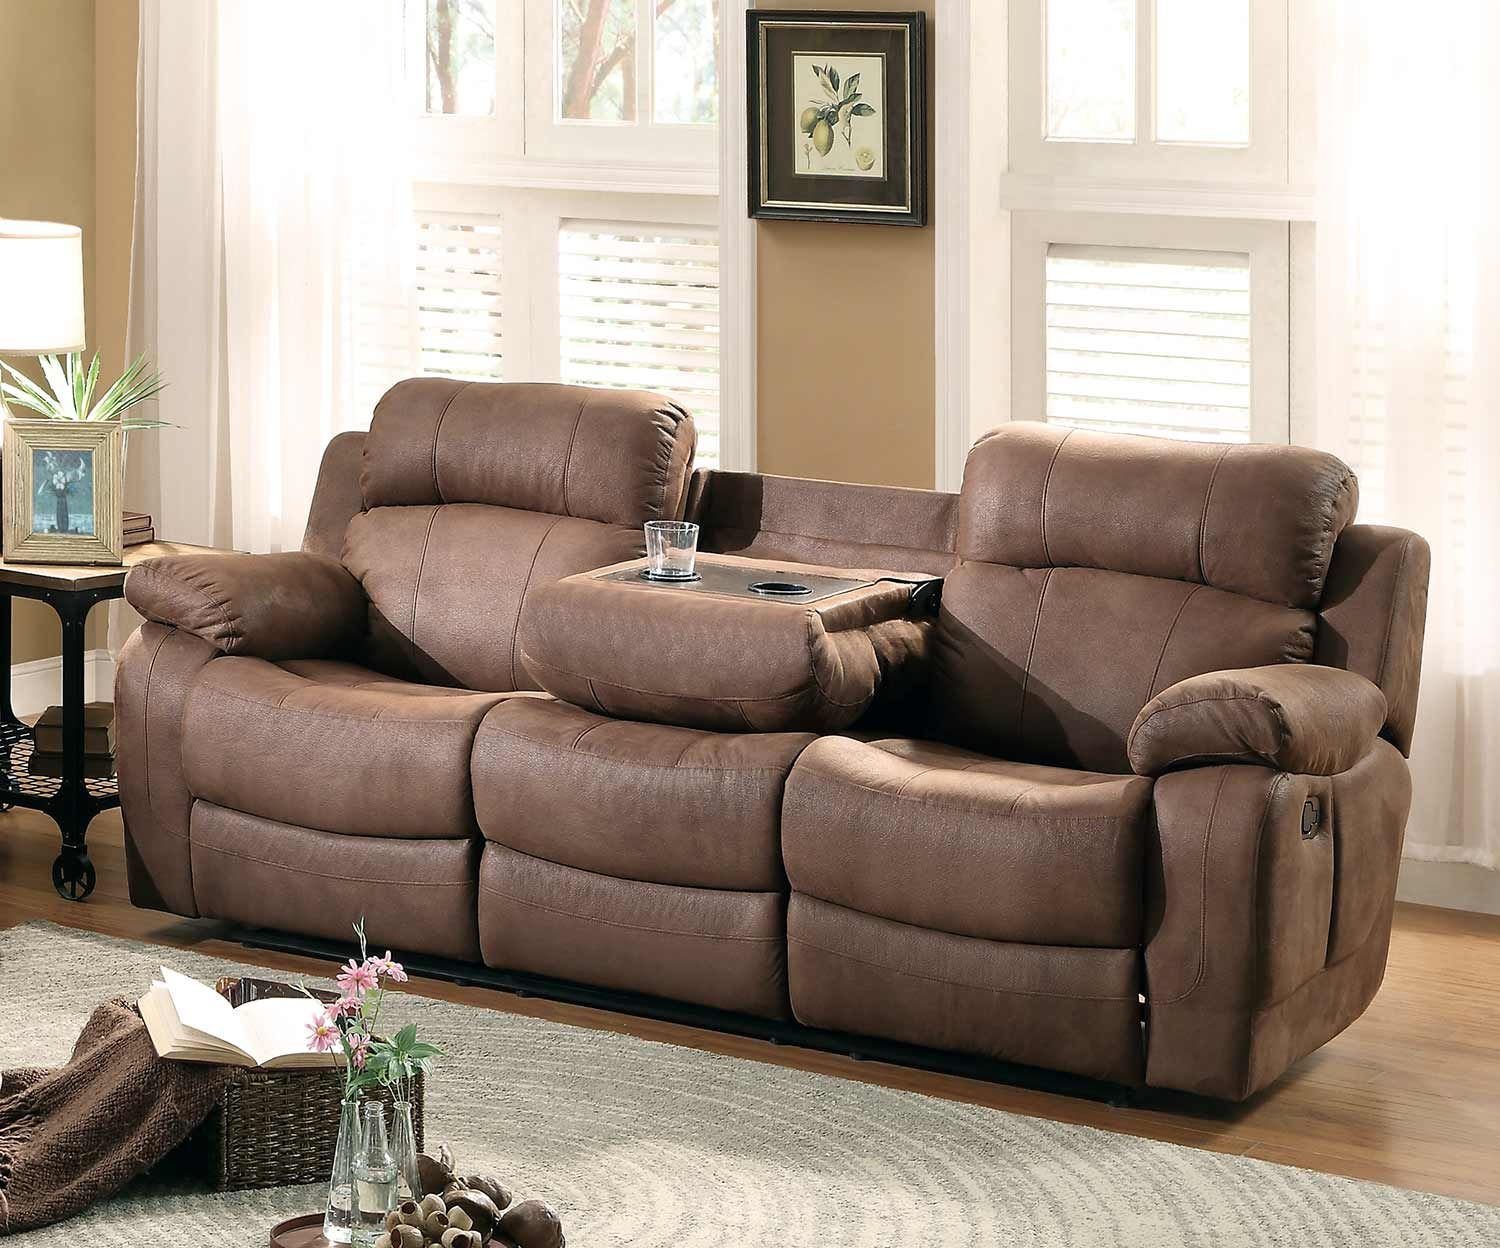 Homelegance Marille Double Reclining Sofa With Center Drop Down Cup Holders Dark Brown 9724dbr